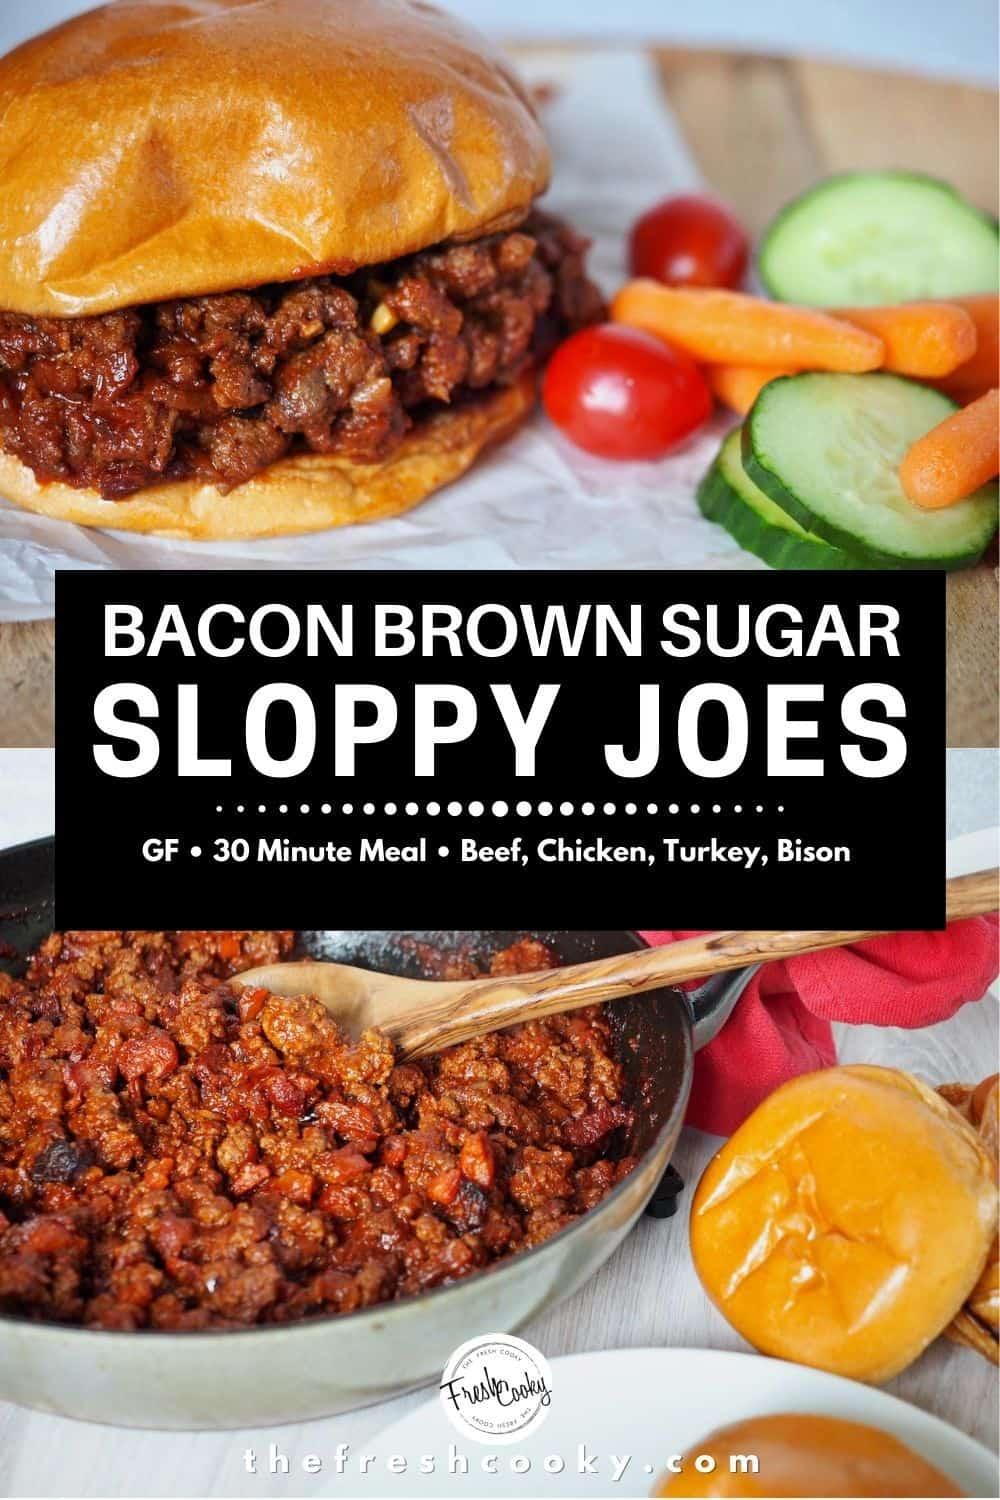 A fabulous quick, easy weeknight meal! These are the best sloppy joes, with bacon, brown sugar and a rich homemade tomato sauce. Easy recipe via @thefreshcooky | #sloppyjoes #bacon #sloppyjoe #burger #sandwich #manwich #glutenfree #30minutemeal #easydinner #dinner #weeknight via @thefreshcooky